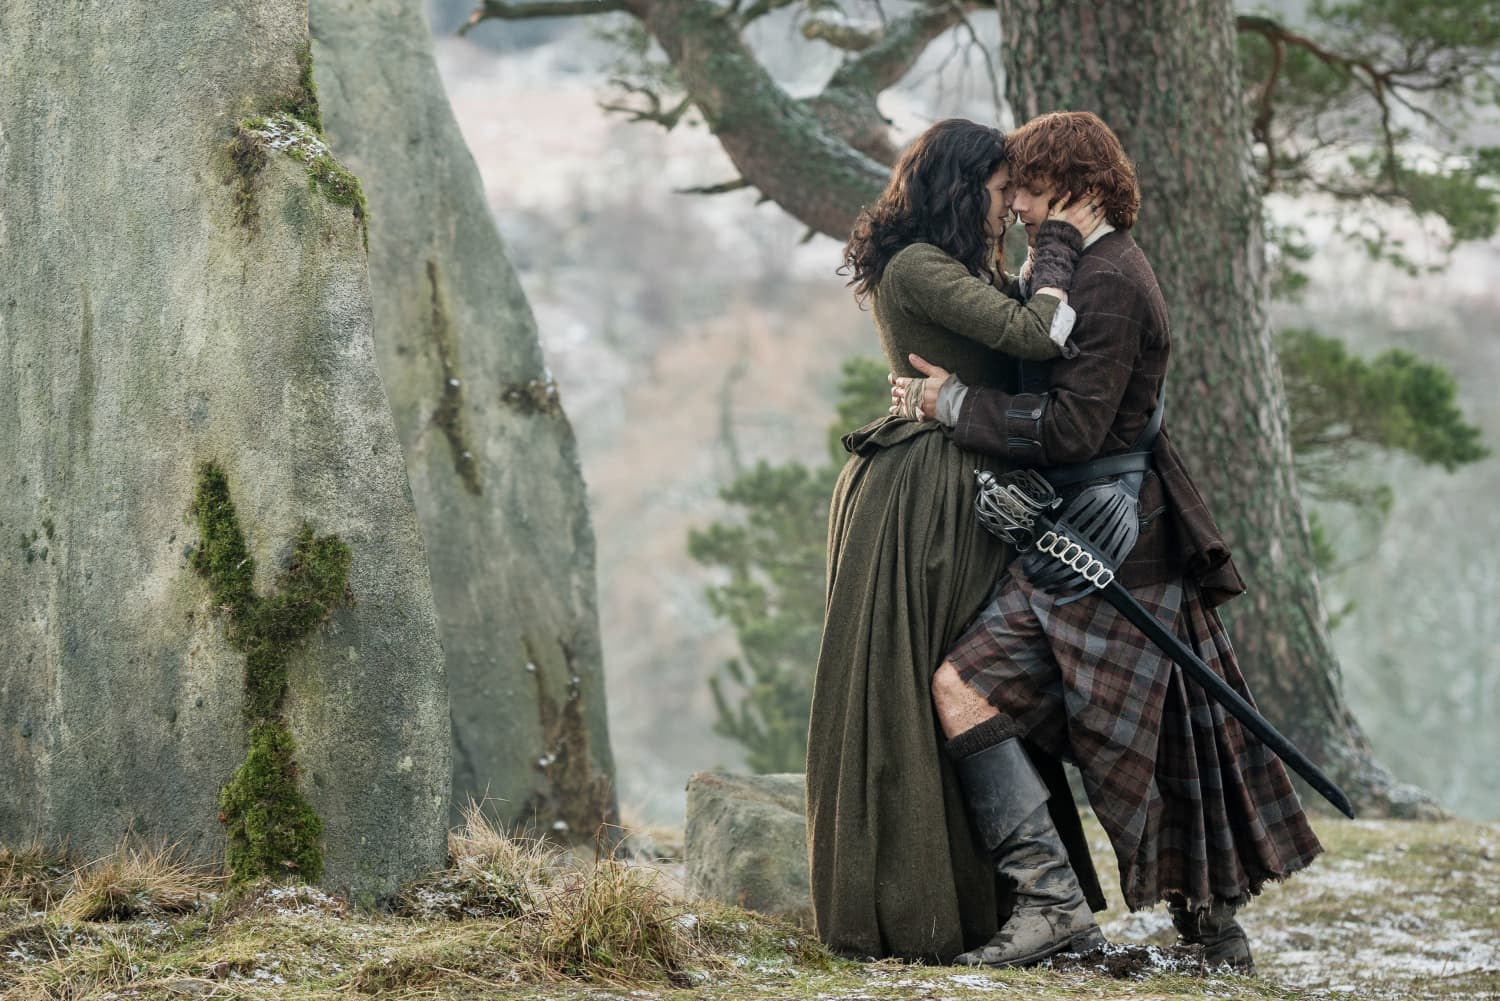 10 Recipes That Are Hotter than an Outlander Episode